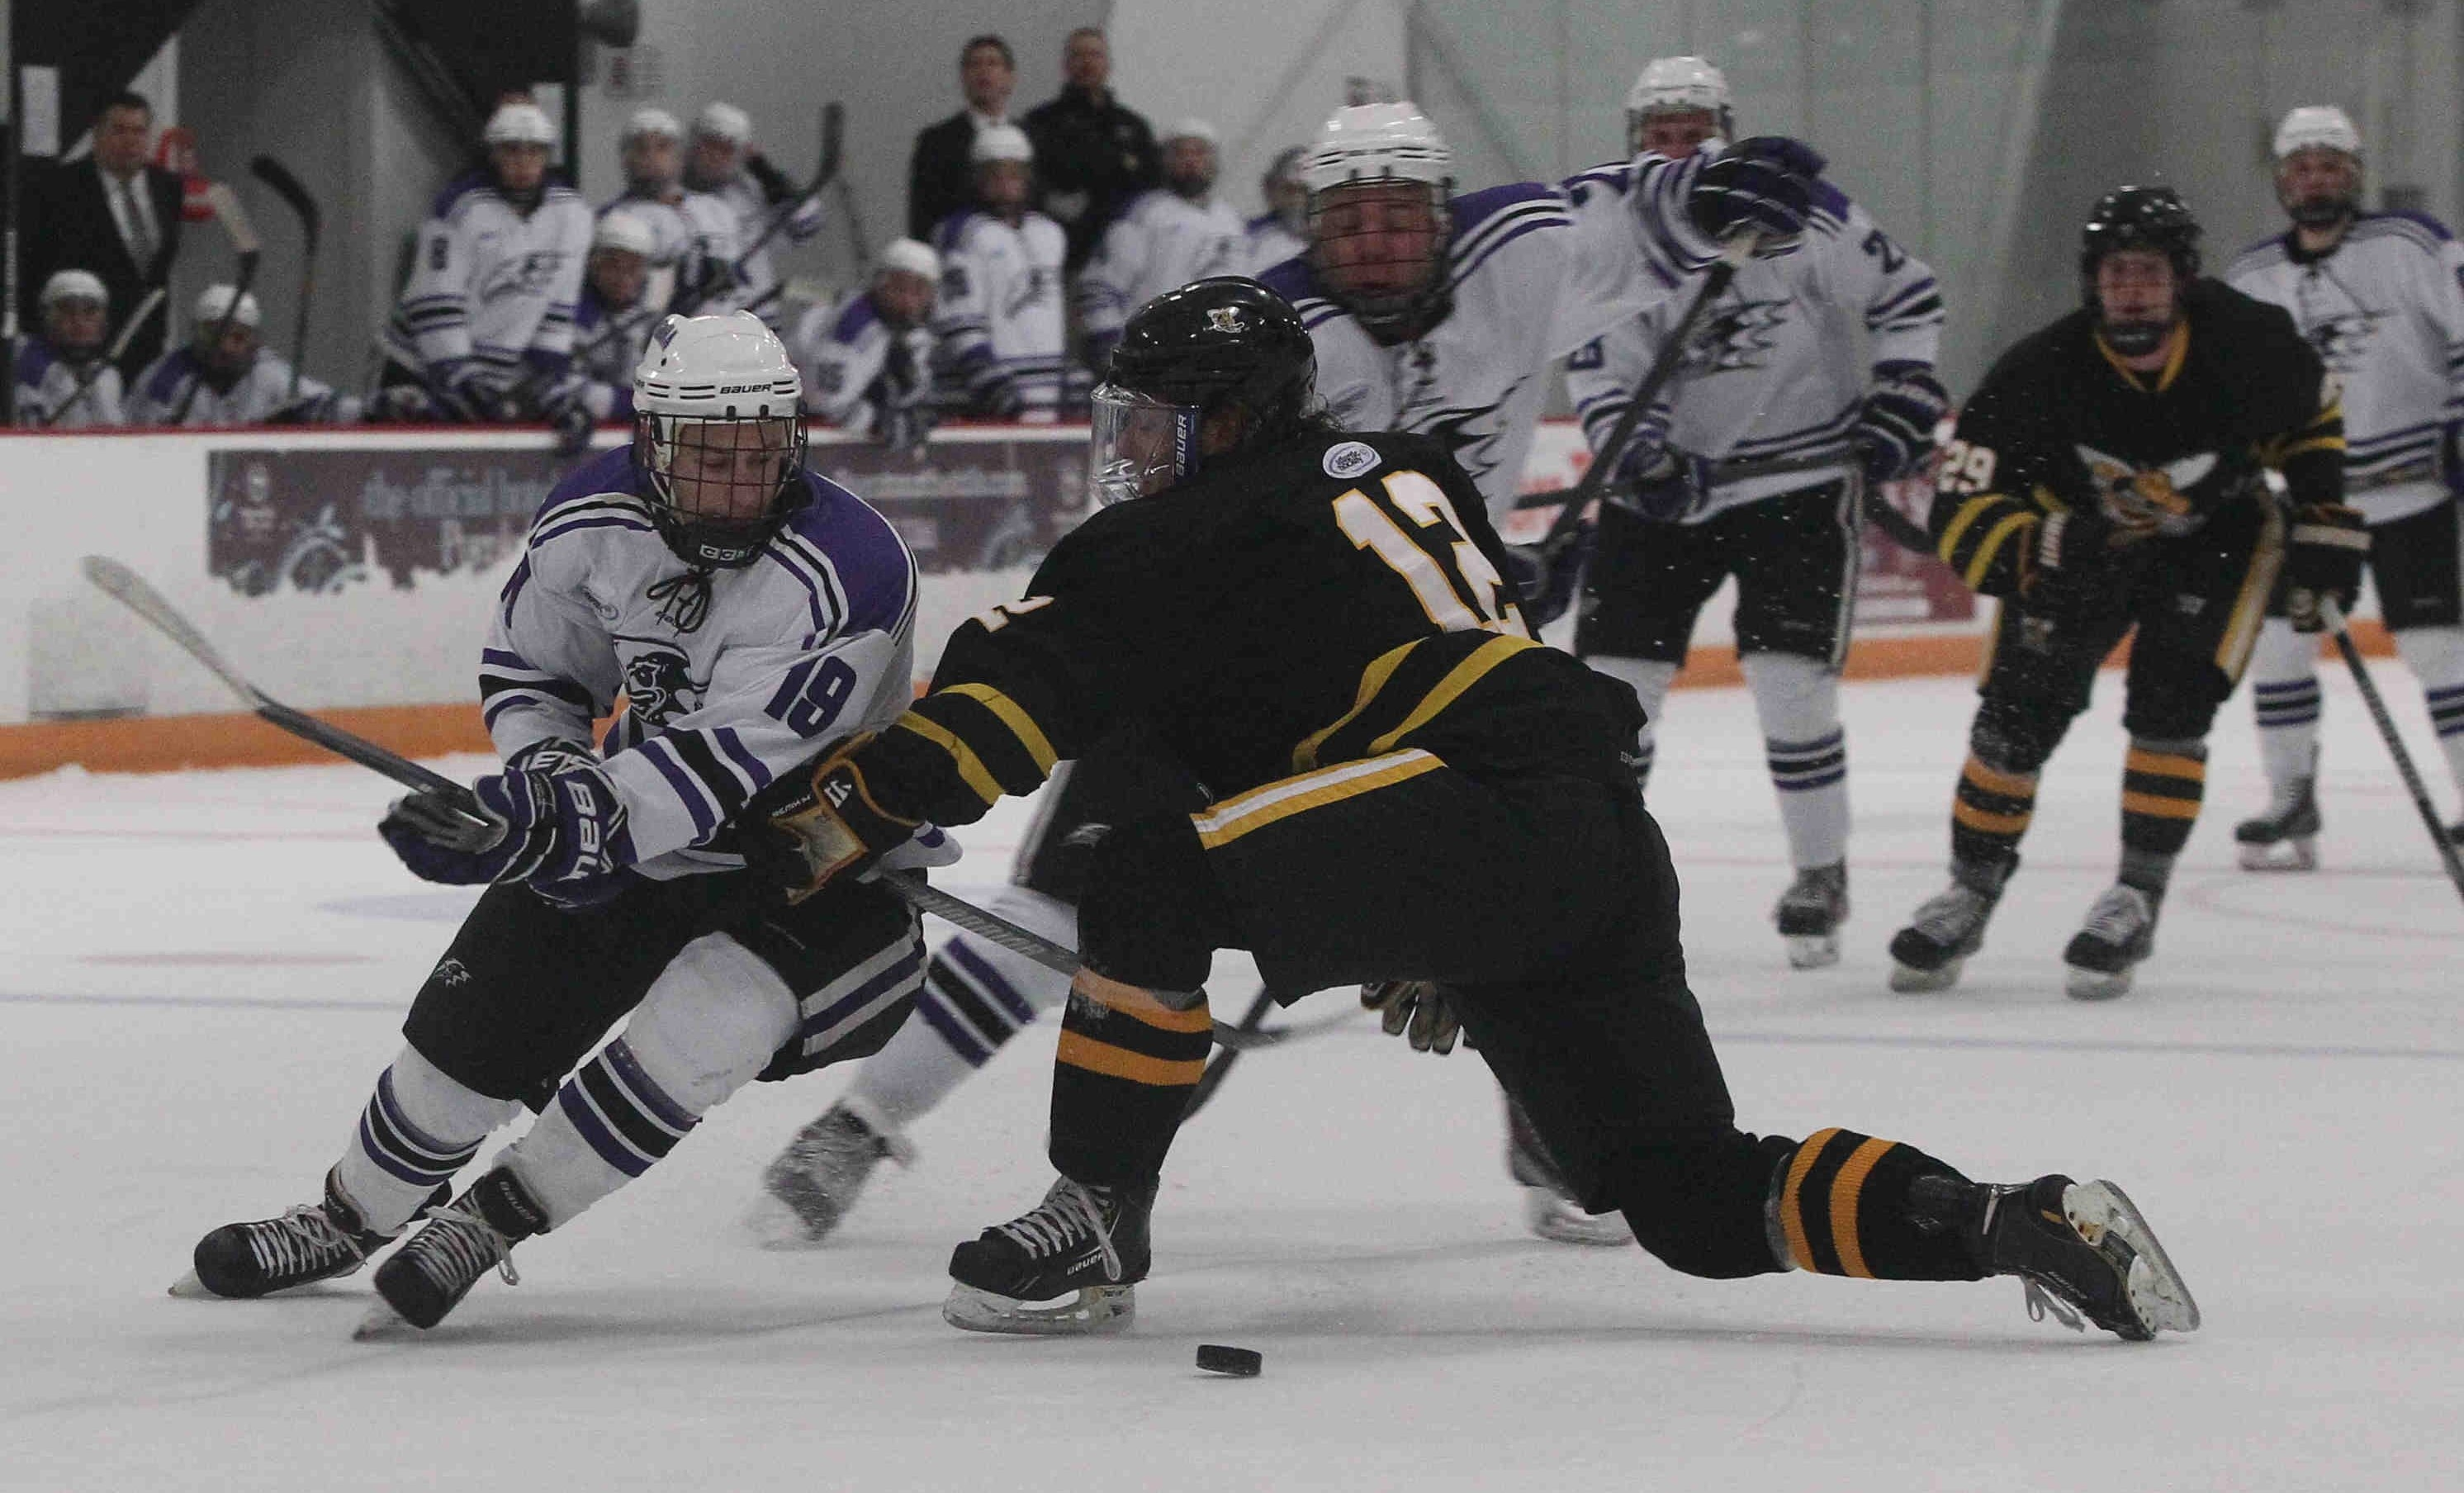 Niagara's Phil Nasca, left, looks to work around AIC's Nick Campanale during first-period action at Dwyer Arena.